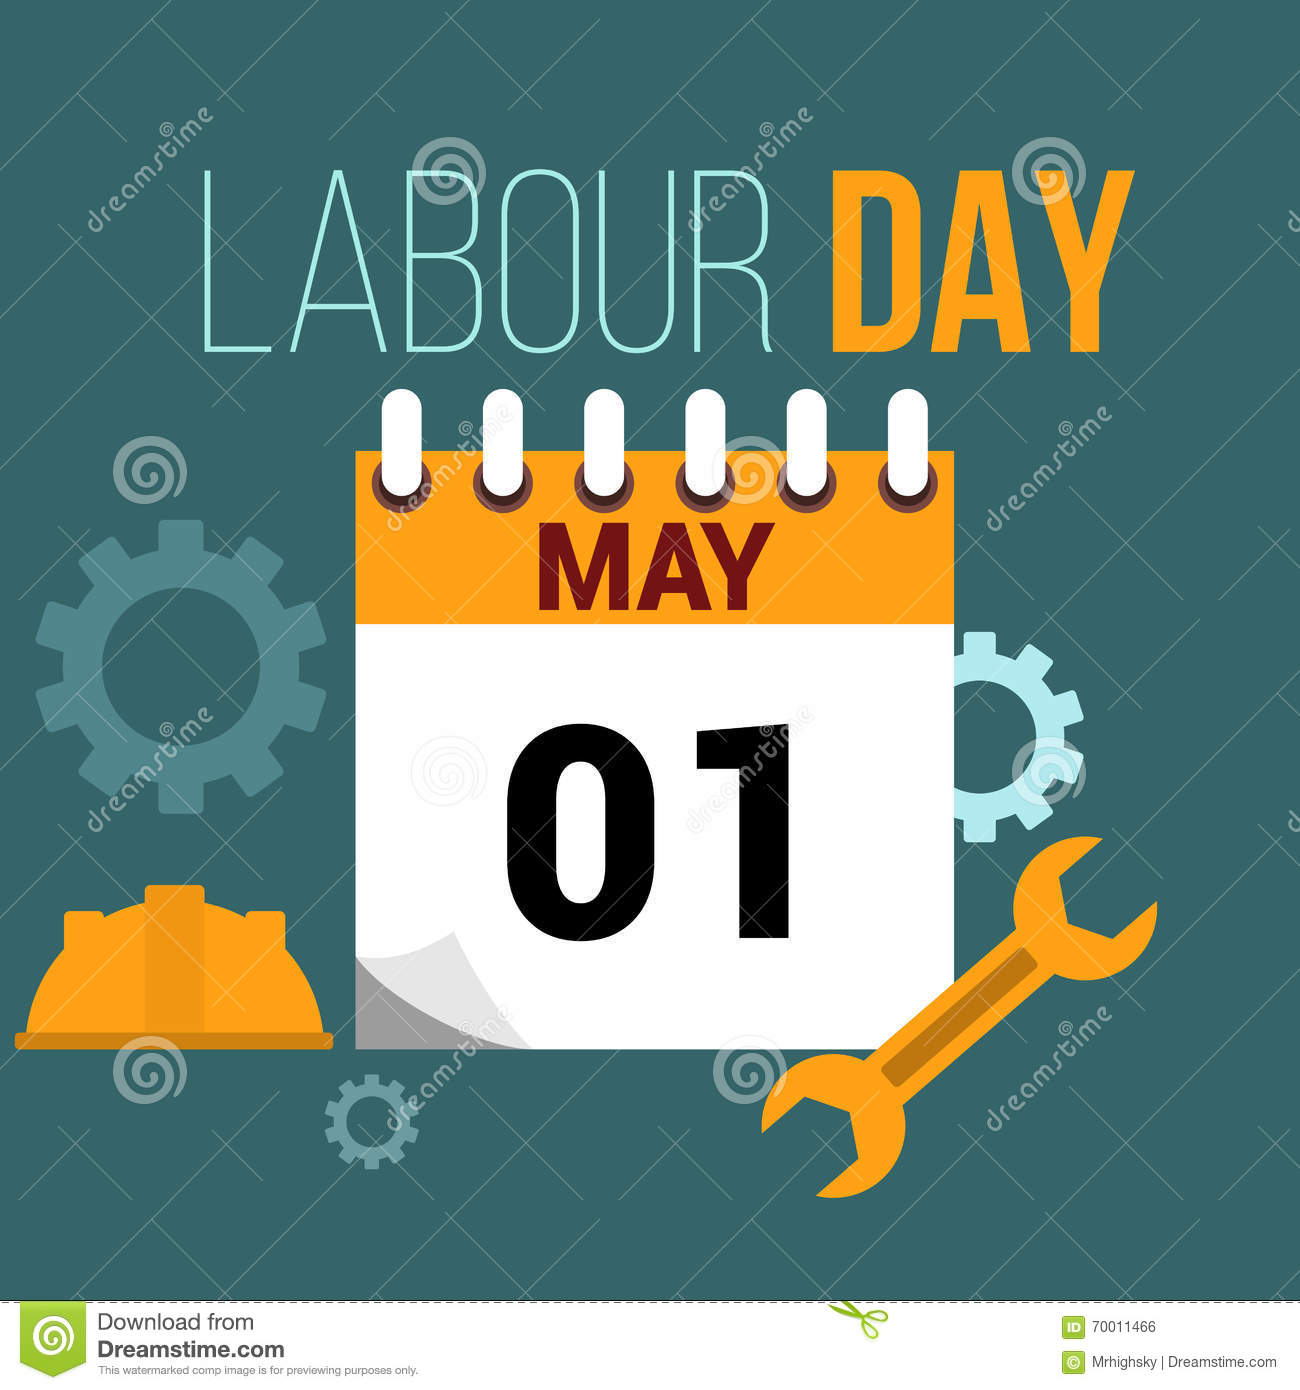 May 1 Labour Day Flat Style Illustration Stock Vector Illustration